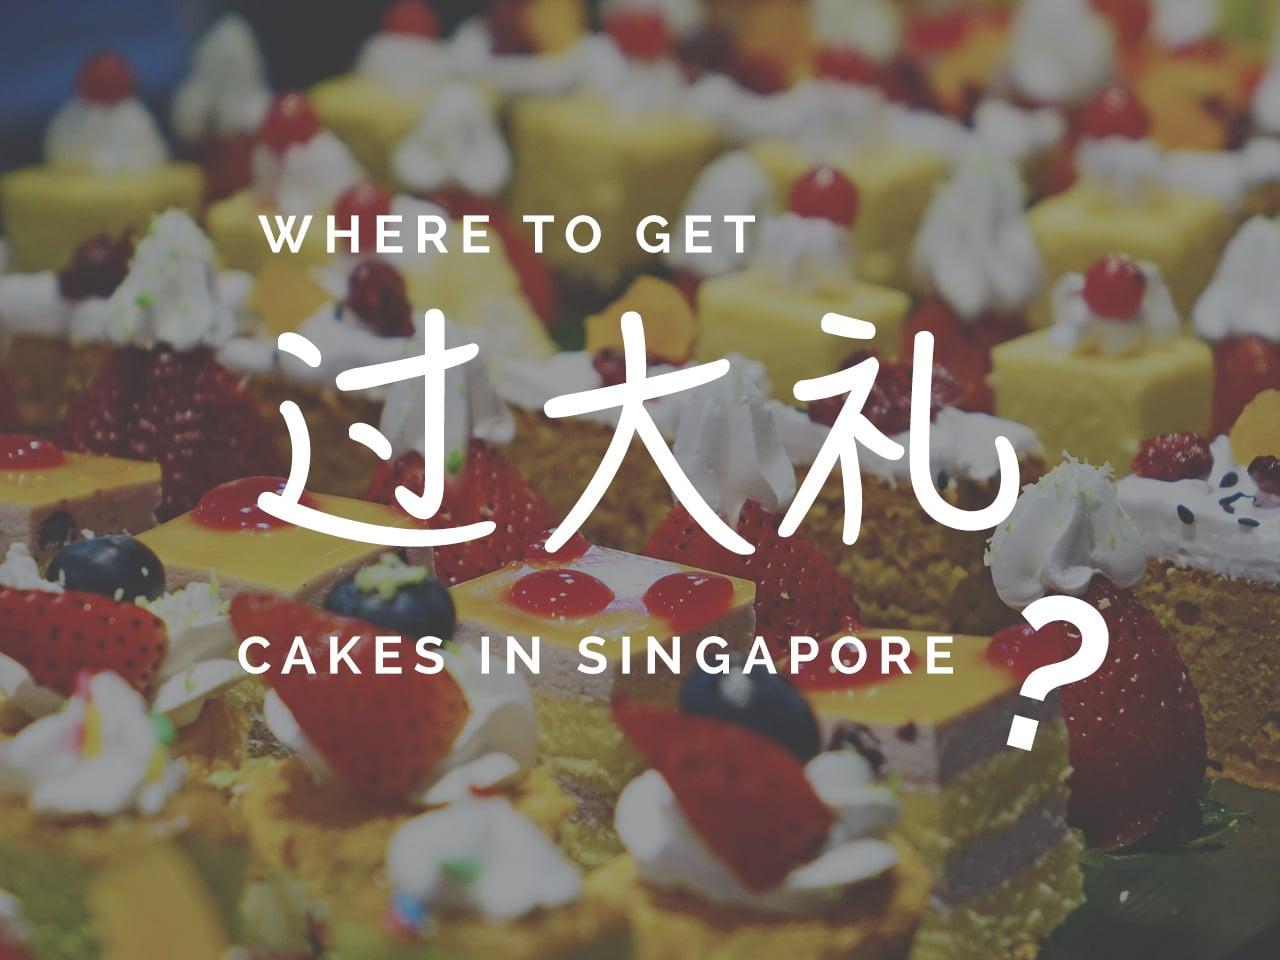 15 Guo Da Li Cakes And Where To Find Them In Singapore